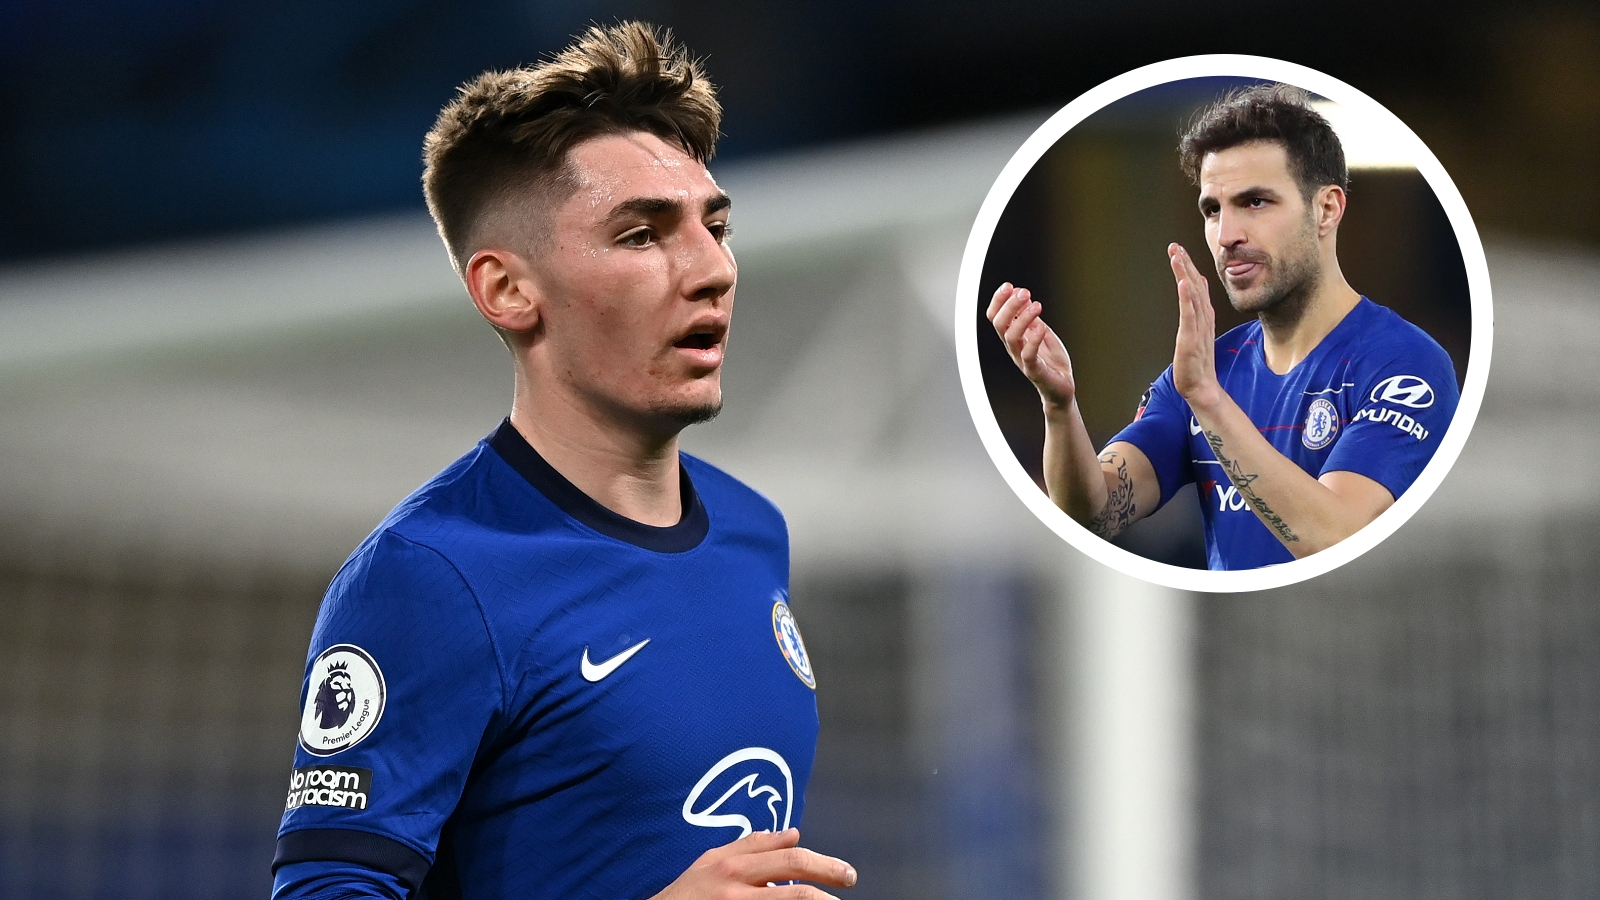 Fabregas acts as inspiration for Gilmour as Chelsea teenager seeks to emulate World Cup winner